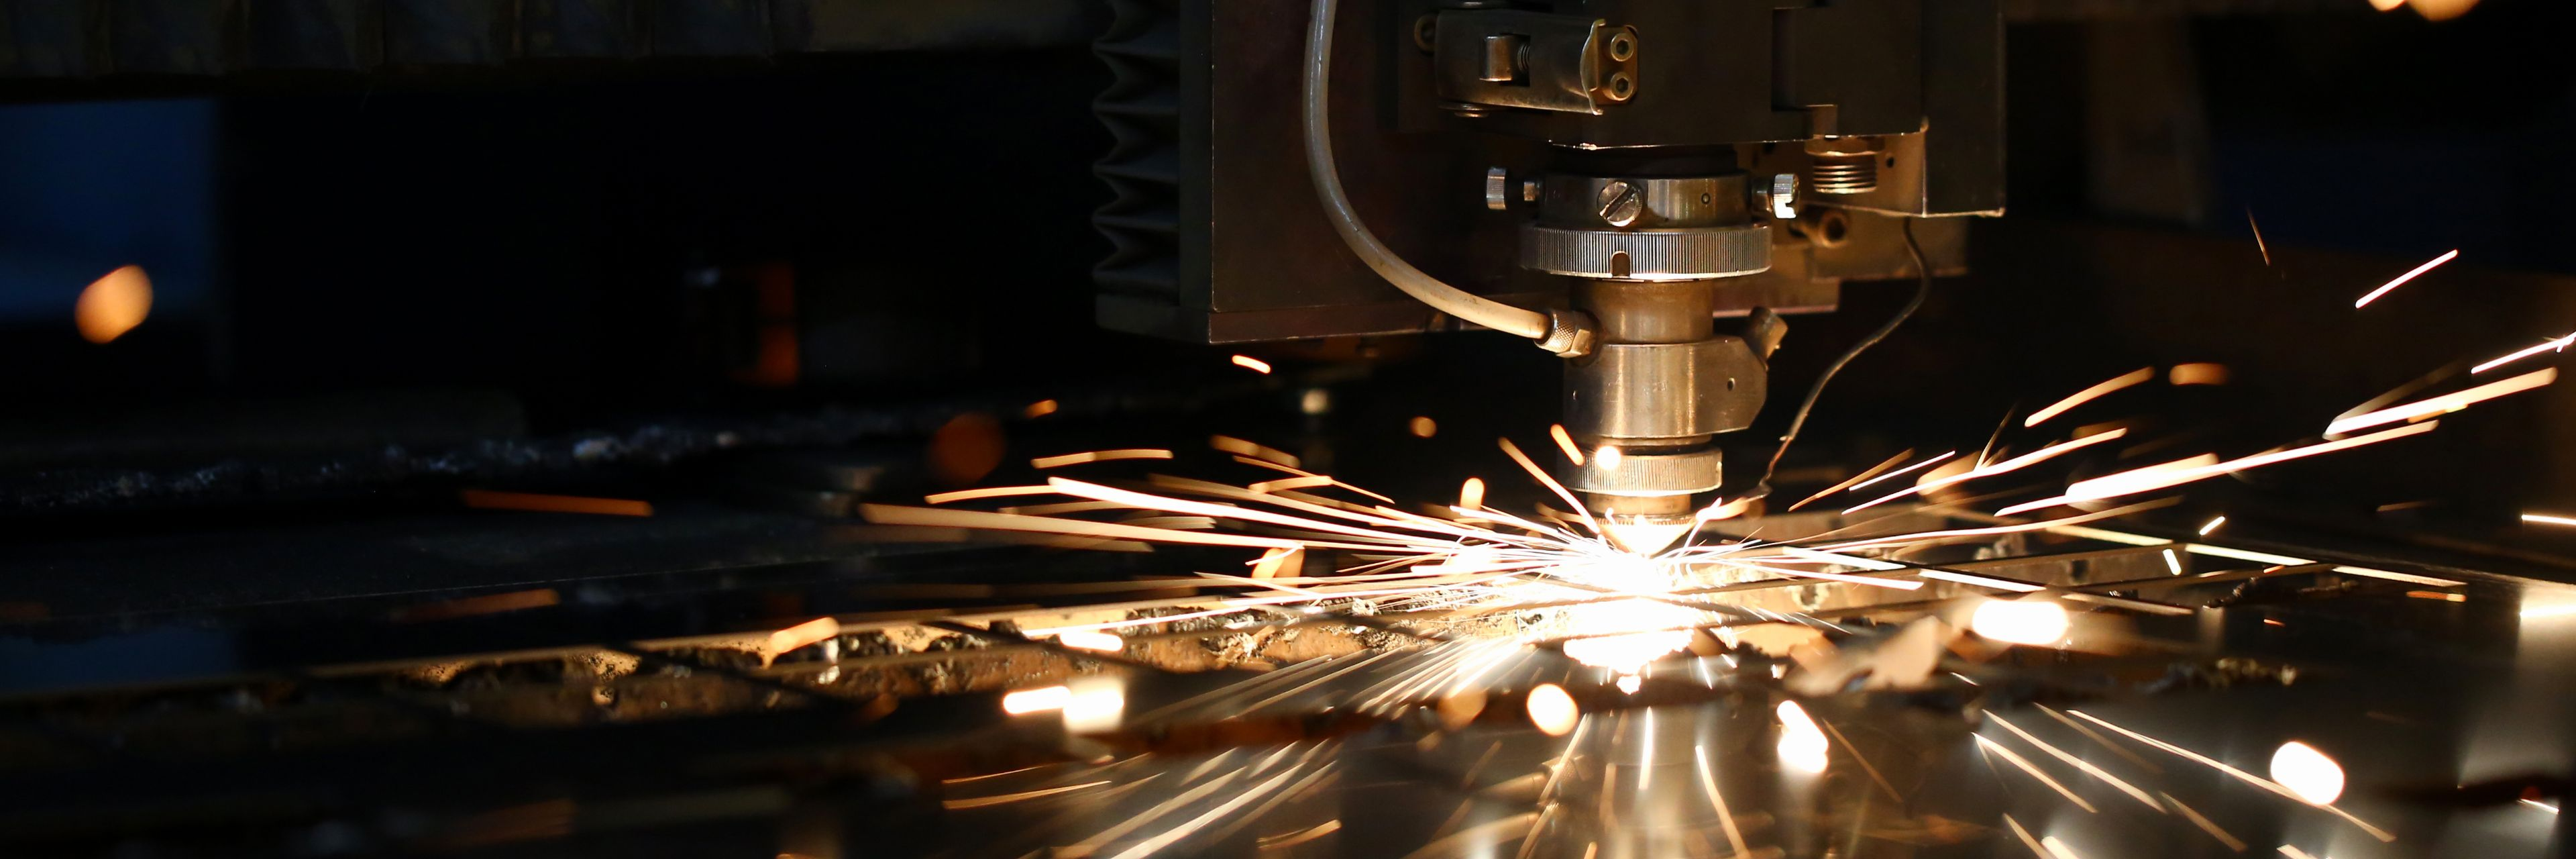 Sparks flying out a machine head for metal processing